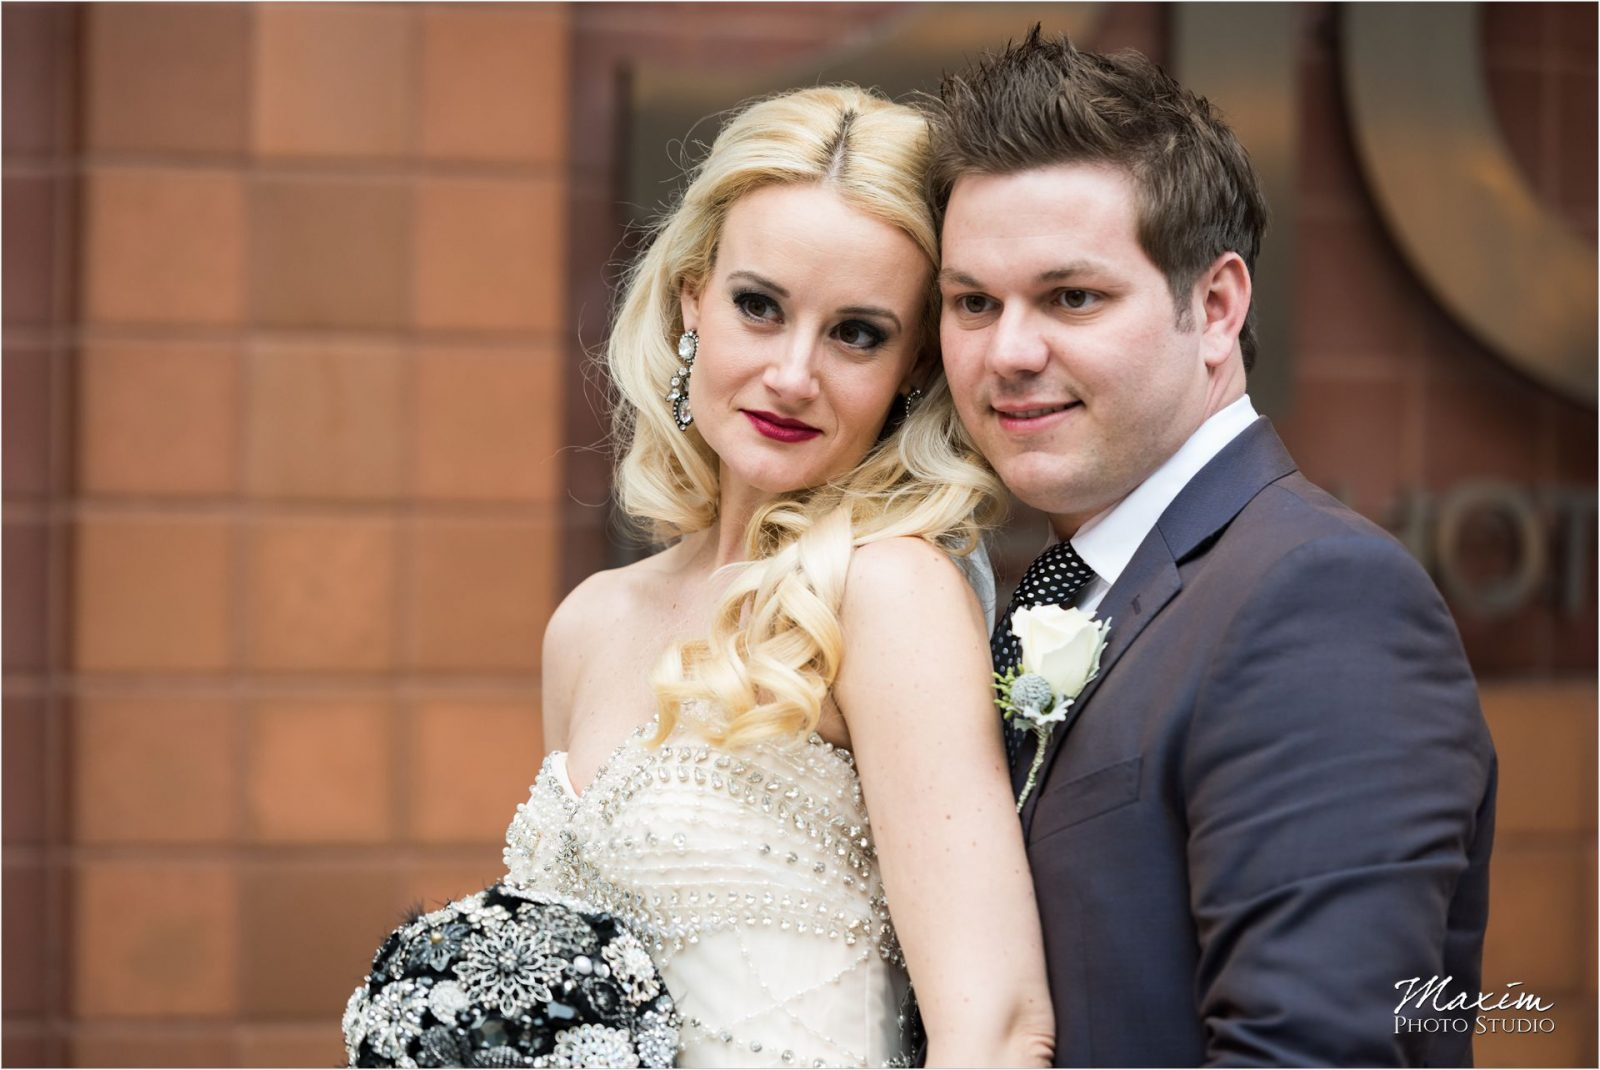 Cincinnati Wedding Photographers 21C Museum Hotel bride groom portraits